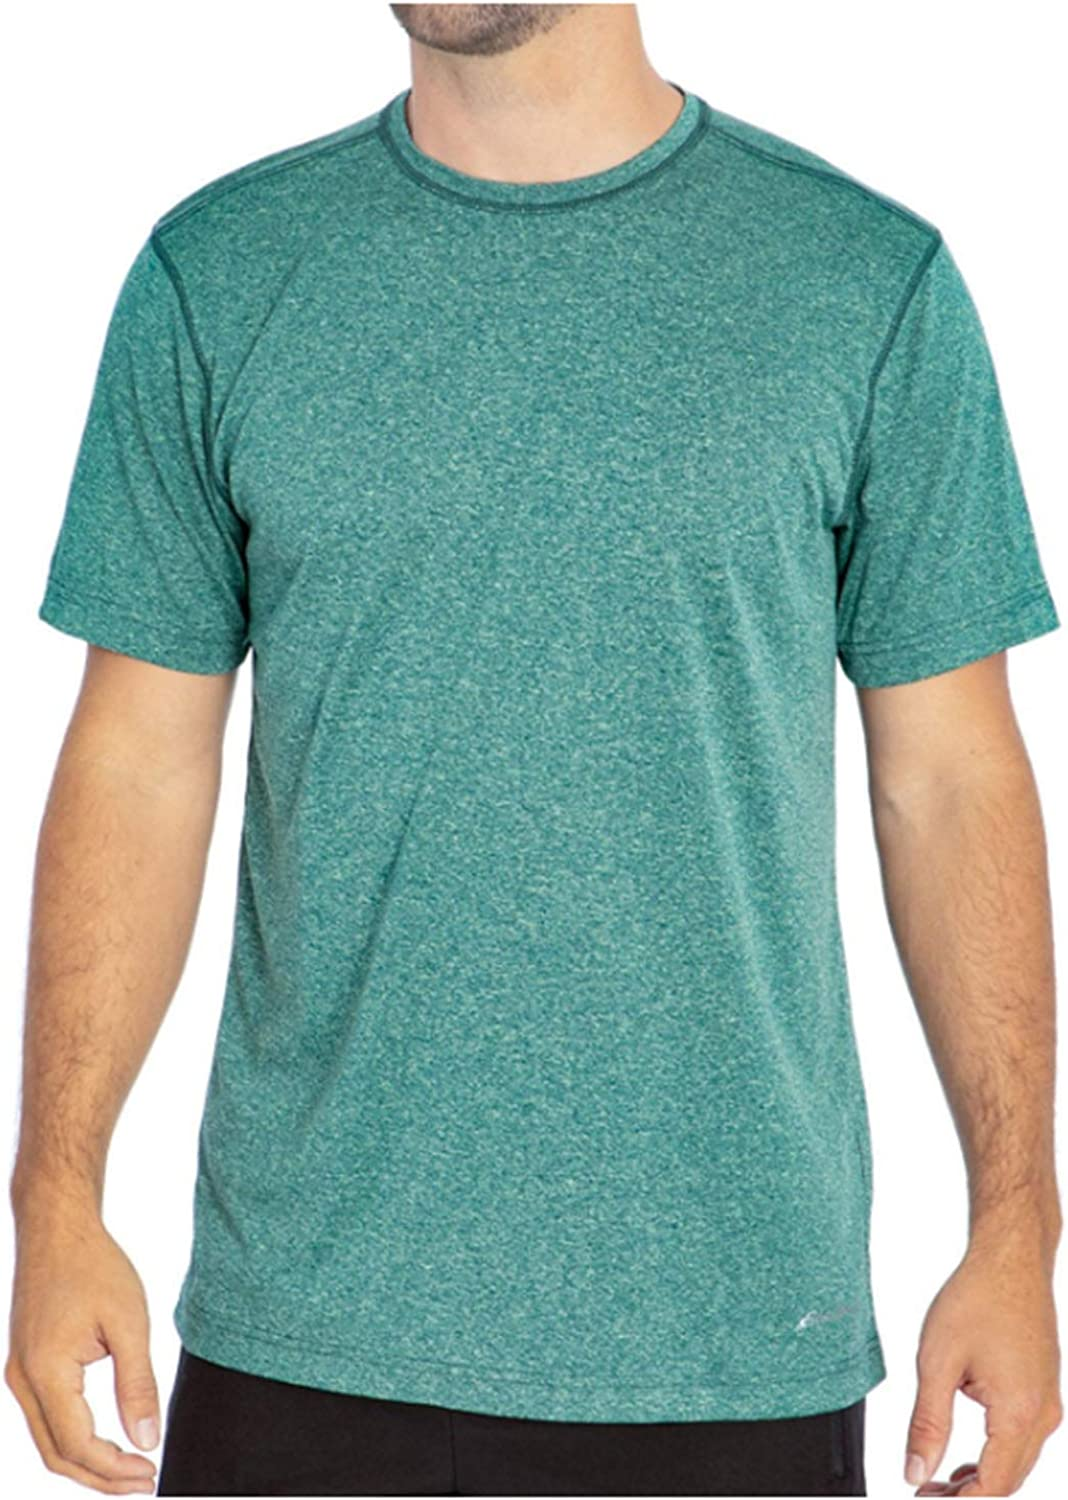 Eddie Bauer Selling Max 64% OFF Short Sleeve Tee Active Shirt